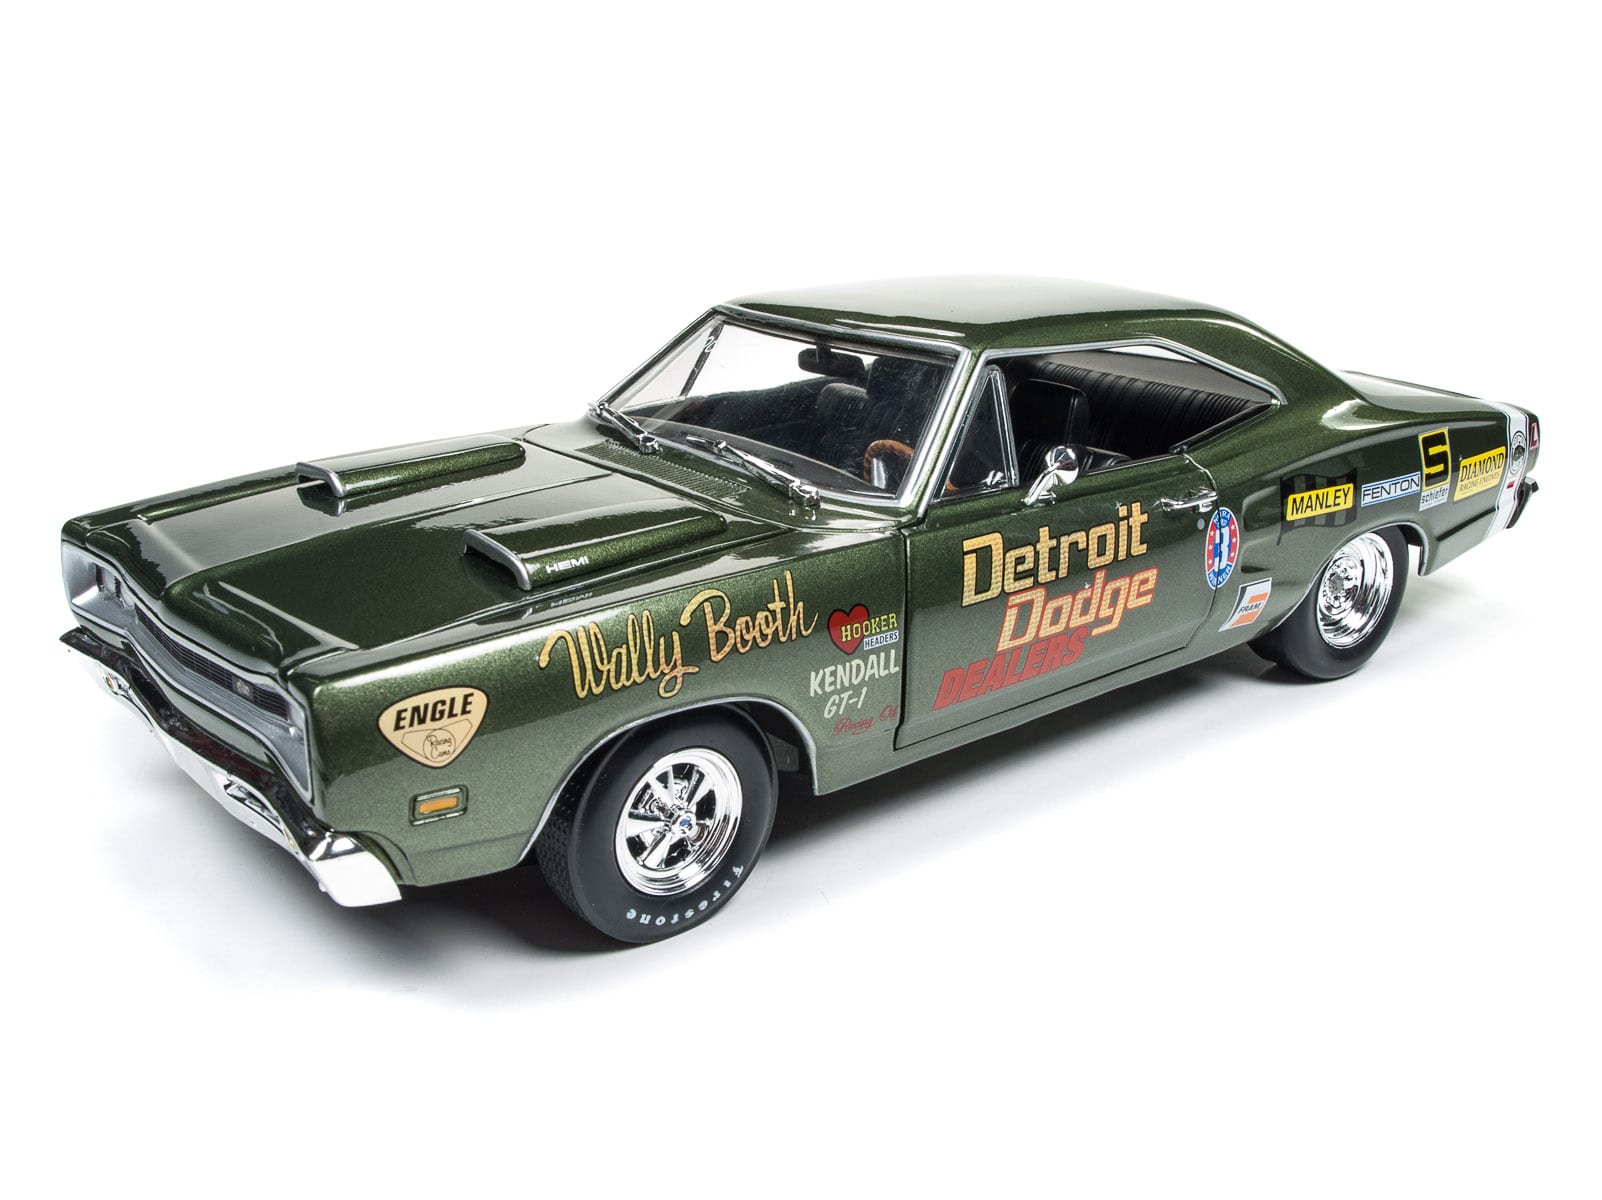 1969 Dodge Super Bee Wally Booth Round2